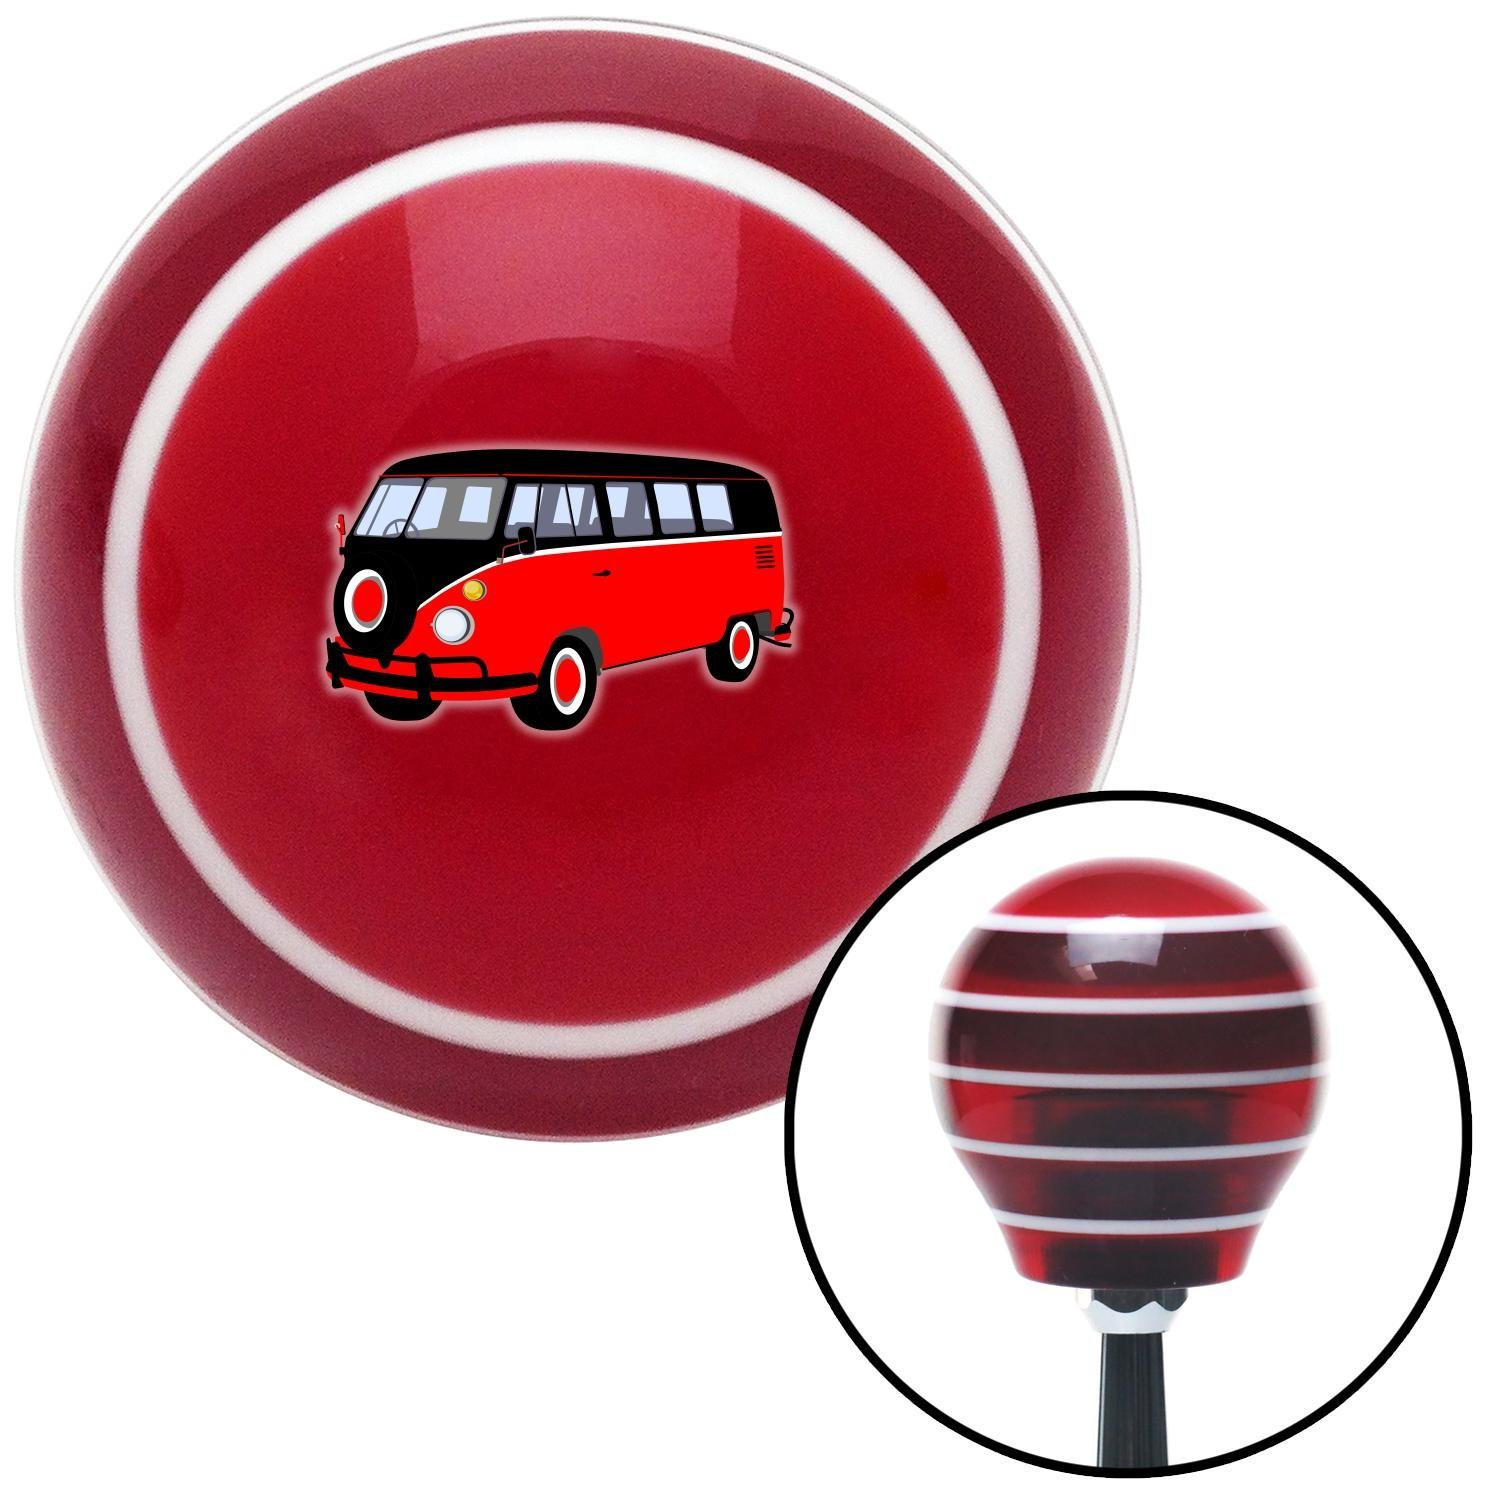 American Shifter 120234 Red Stripe Shift Knob with M16 x 1.5 Insert Red//Black Camper